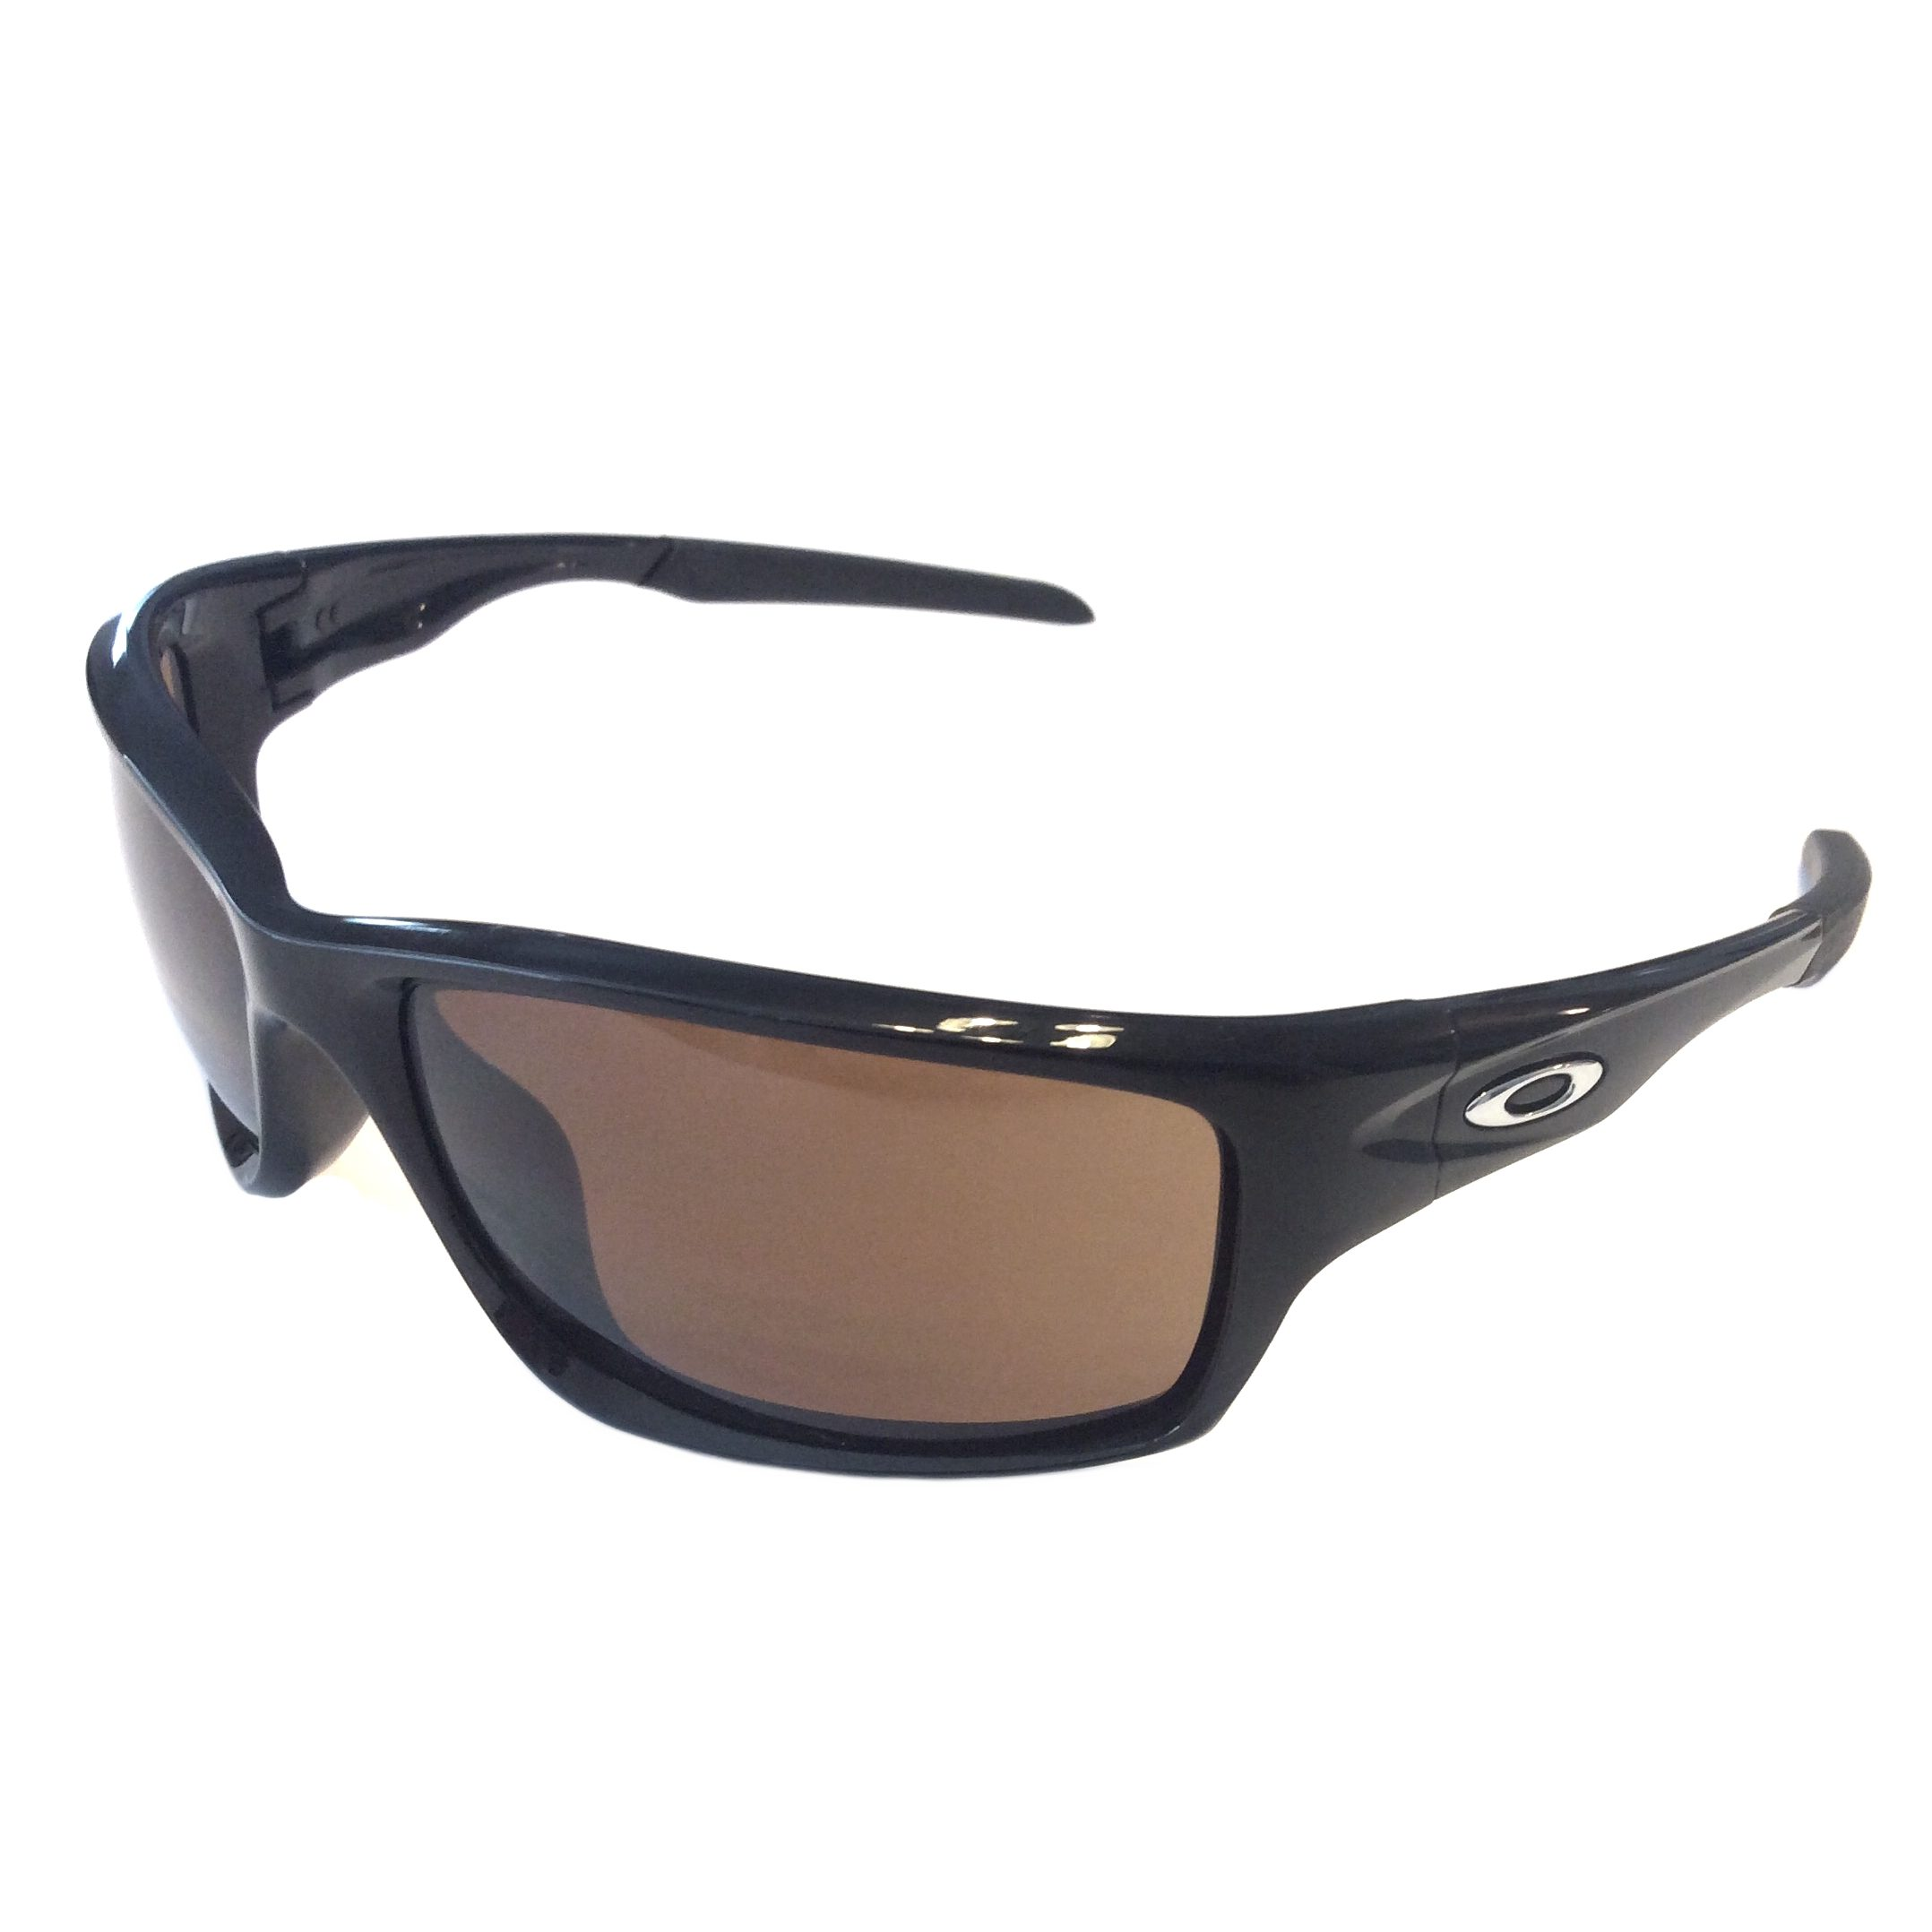 7b3e8e5118 Oakley Canteen Sunglasses - Polished Black - Dark Bronze OO9225-12